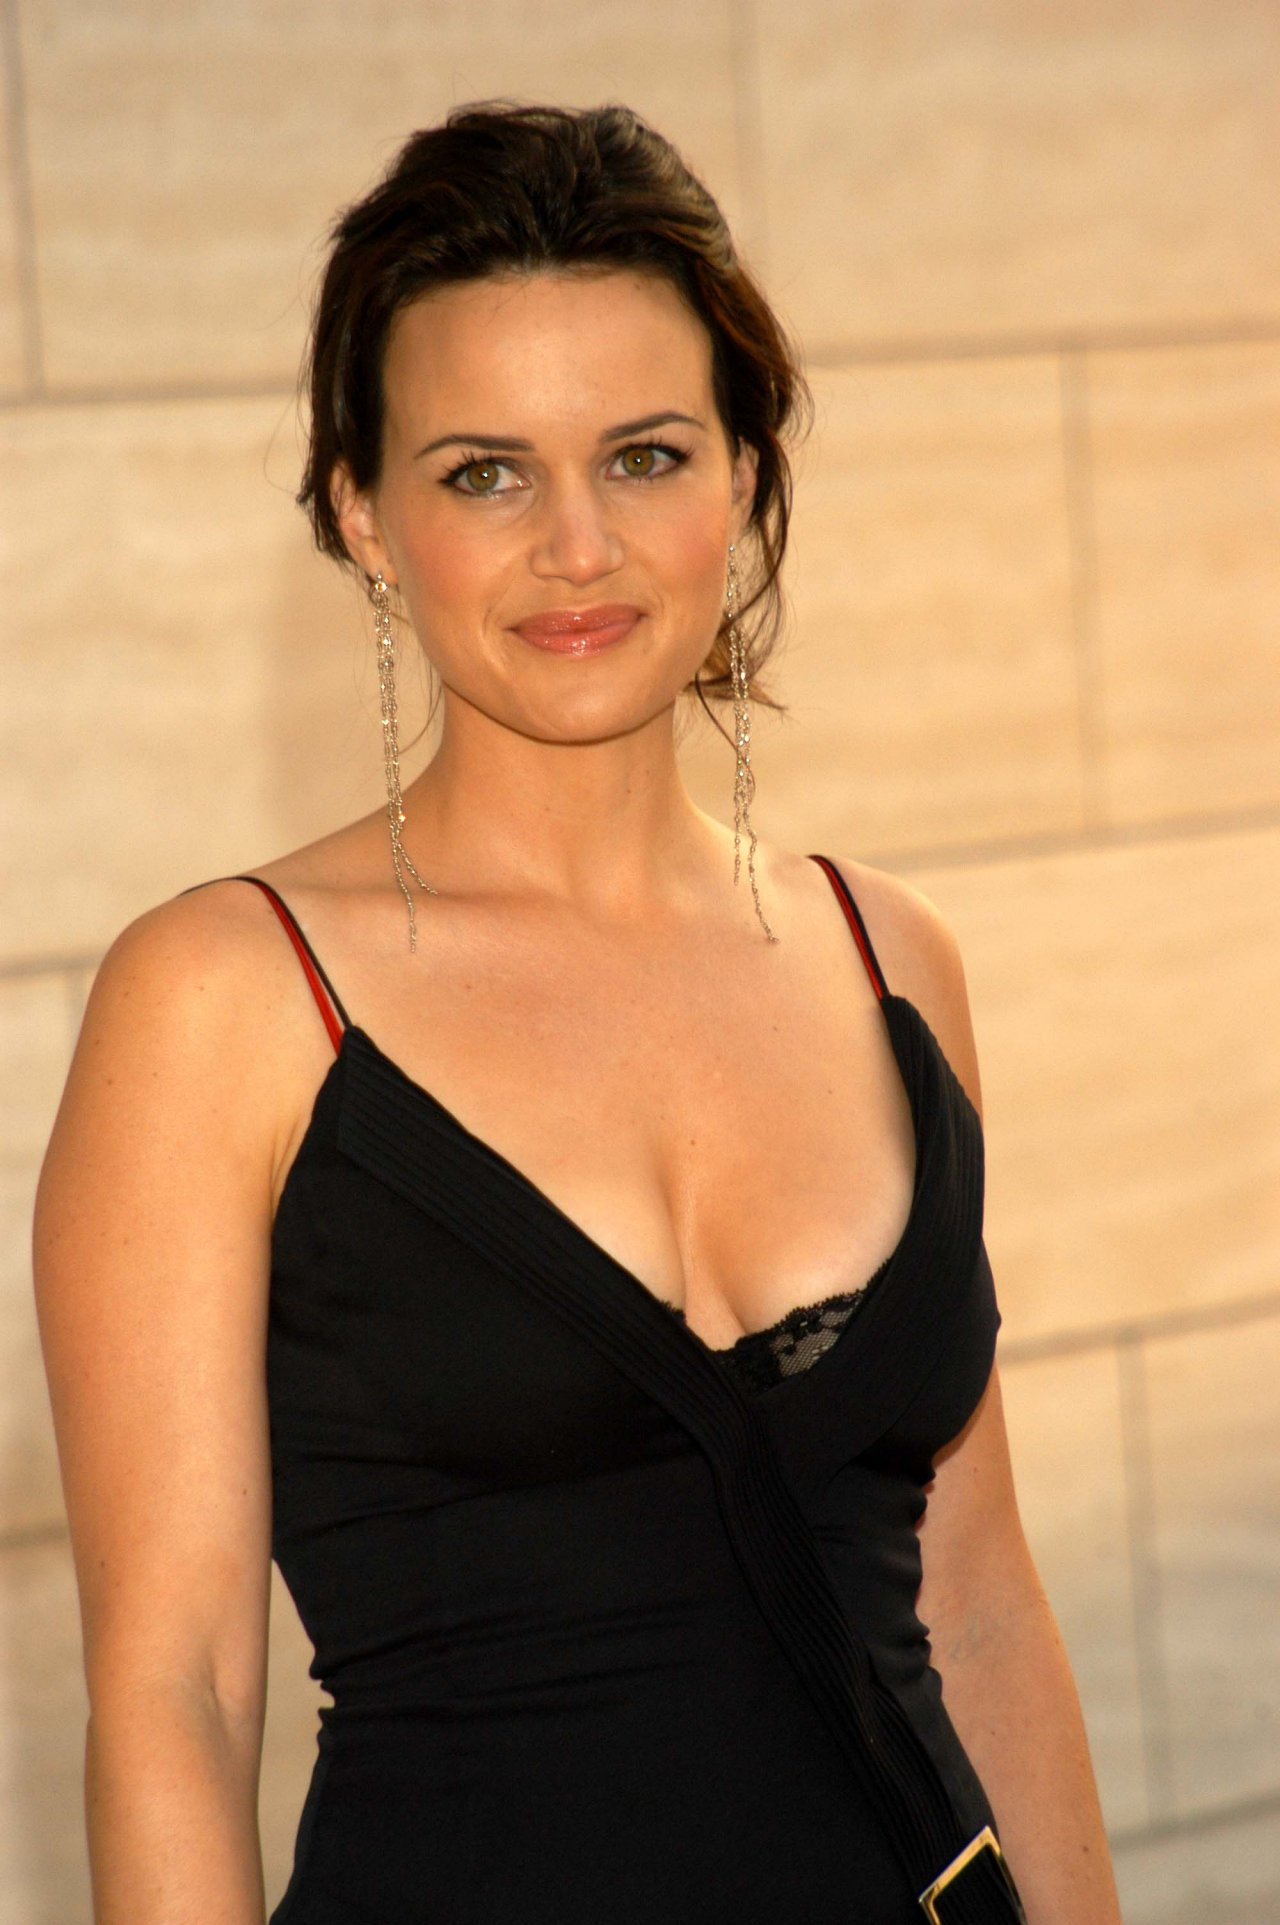 Carla Gugino HD Wallpapers free download